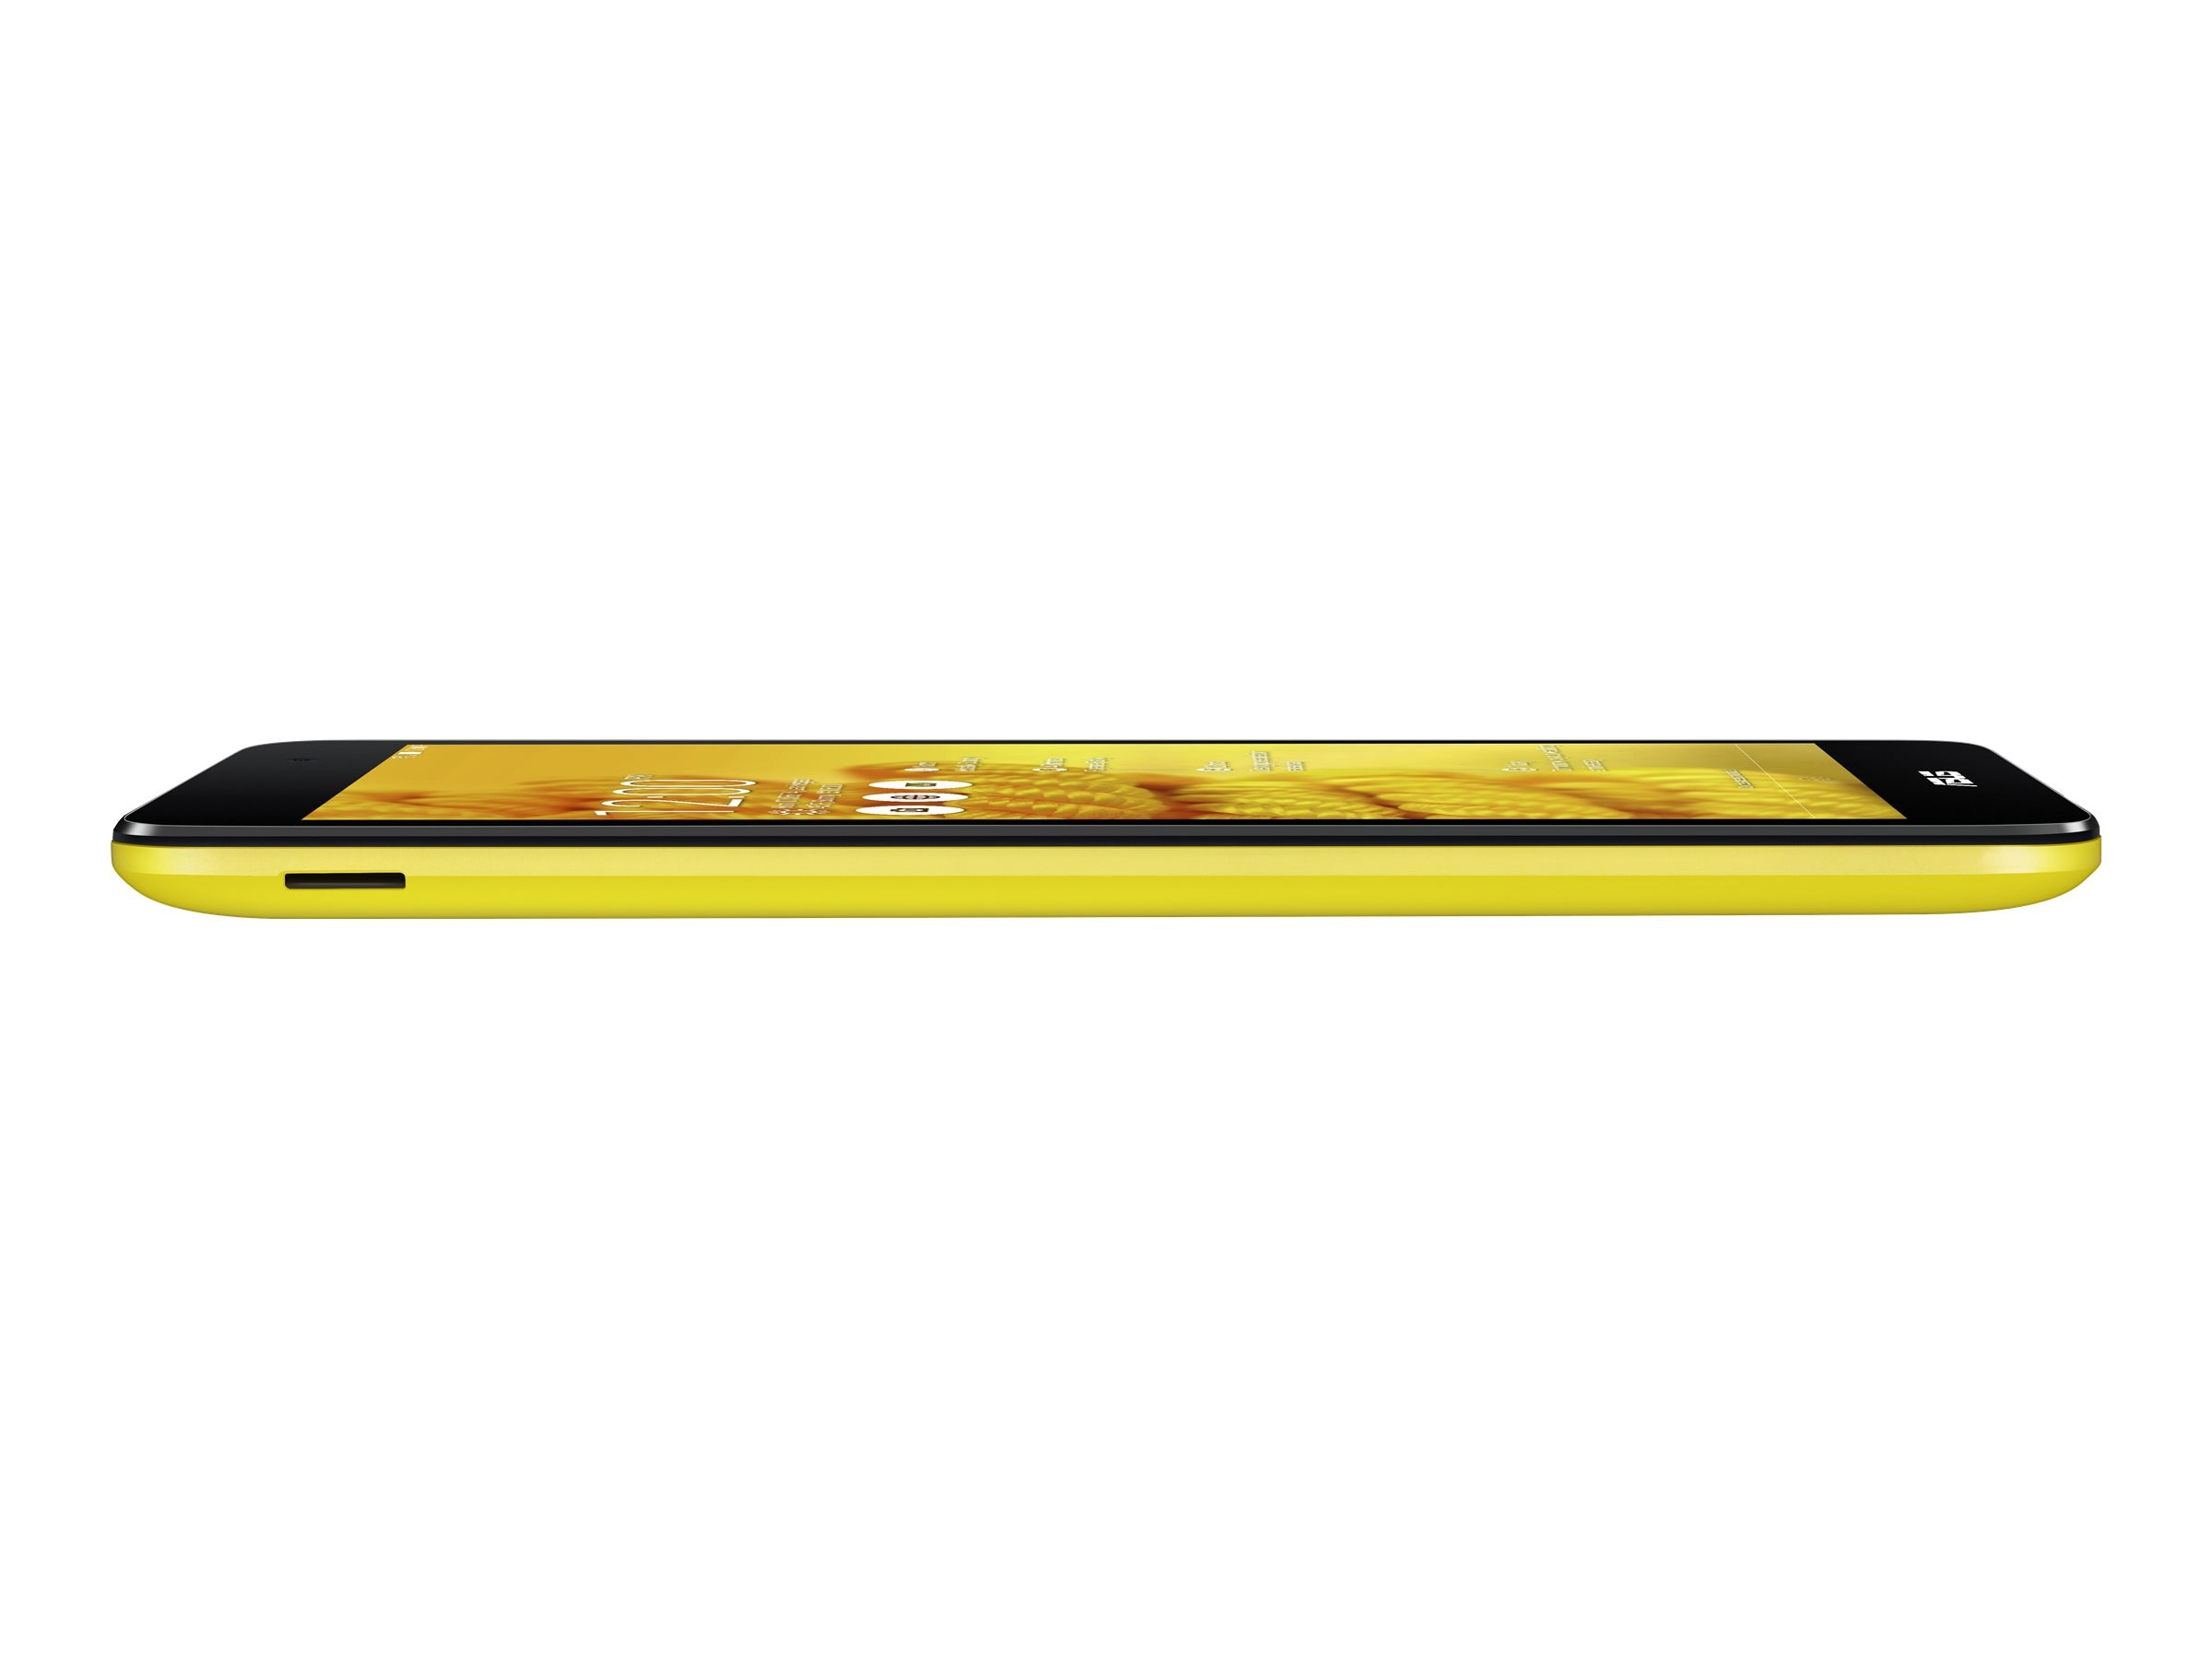 Asus ME176CX-A1 Memo Pad Atom Z3745 1GB 16GB 7 Android Yellow, ME176CX-A1-YL, 17368590, Tablets